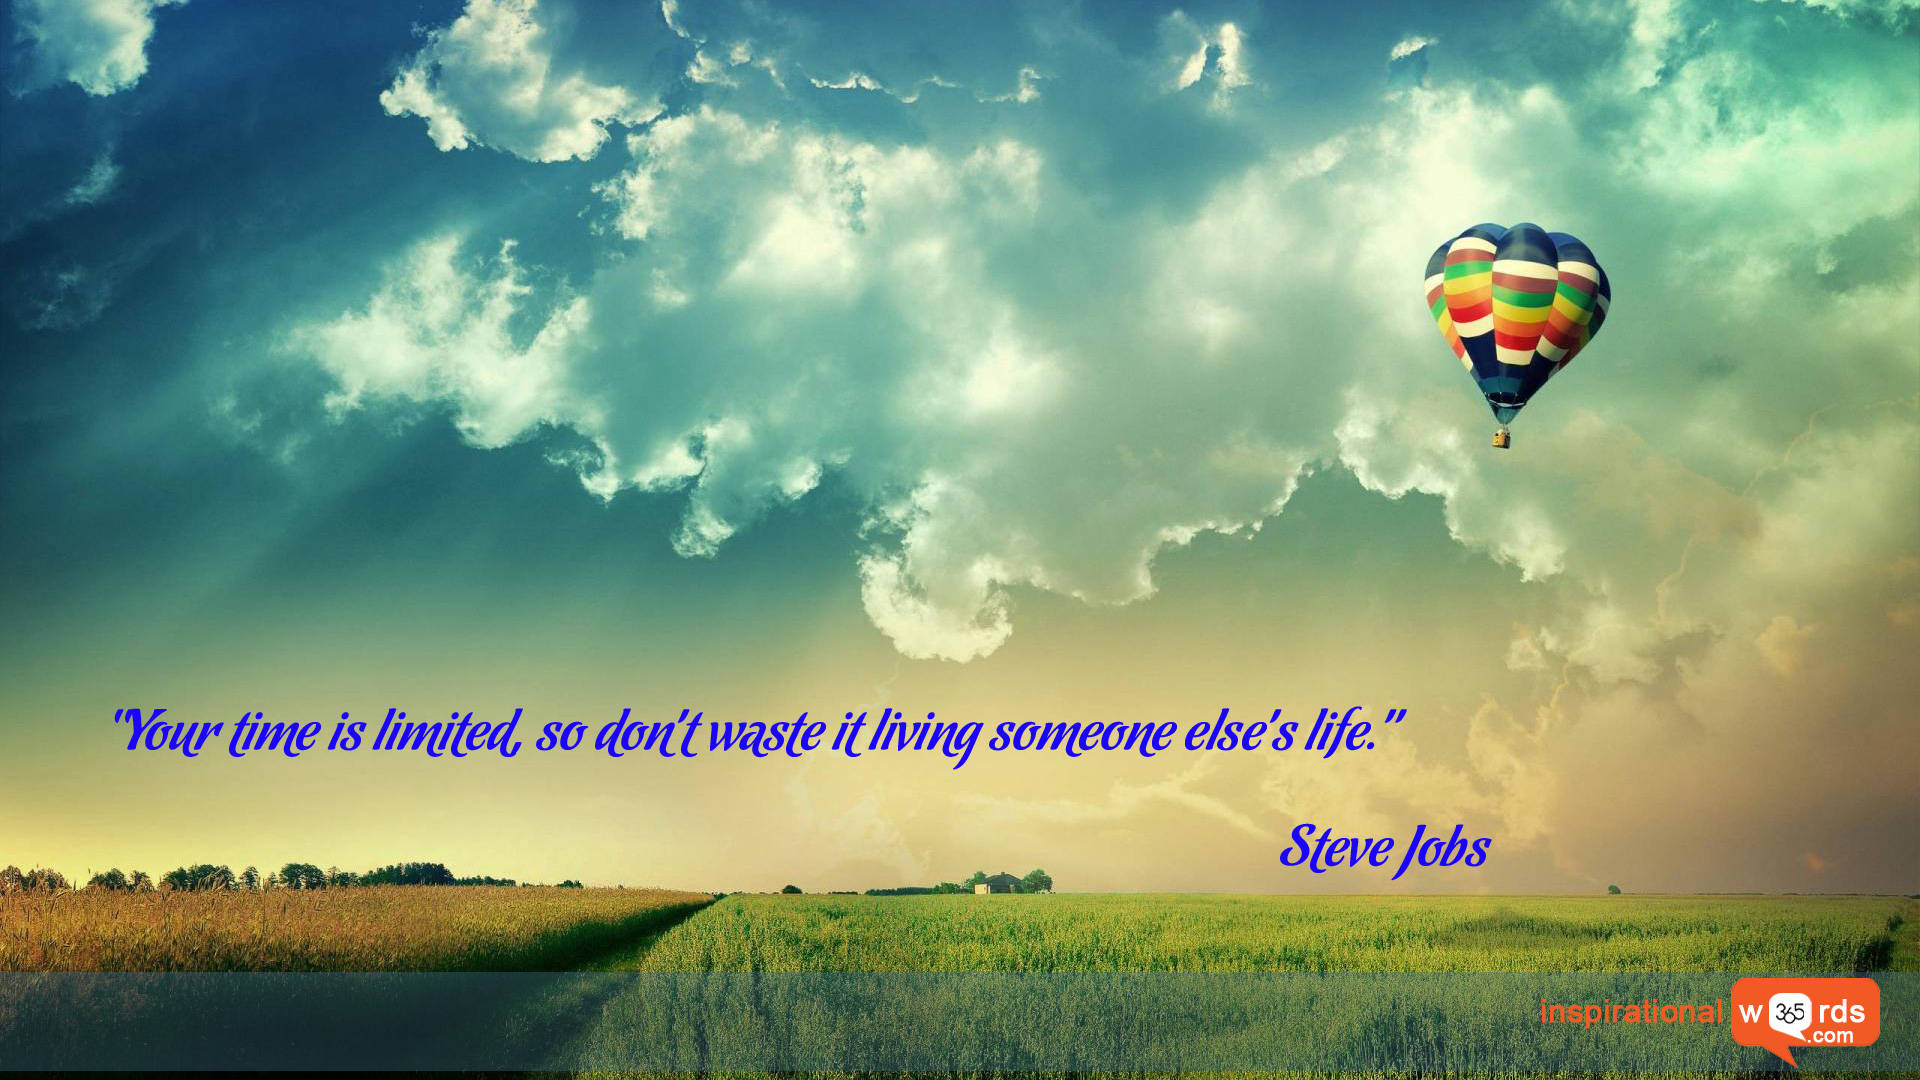 Inspirational Wallpaper Quote by Steve Jobs